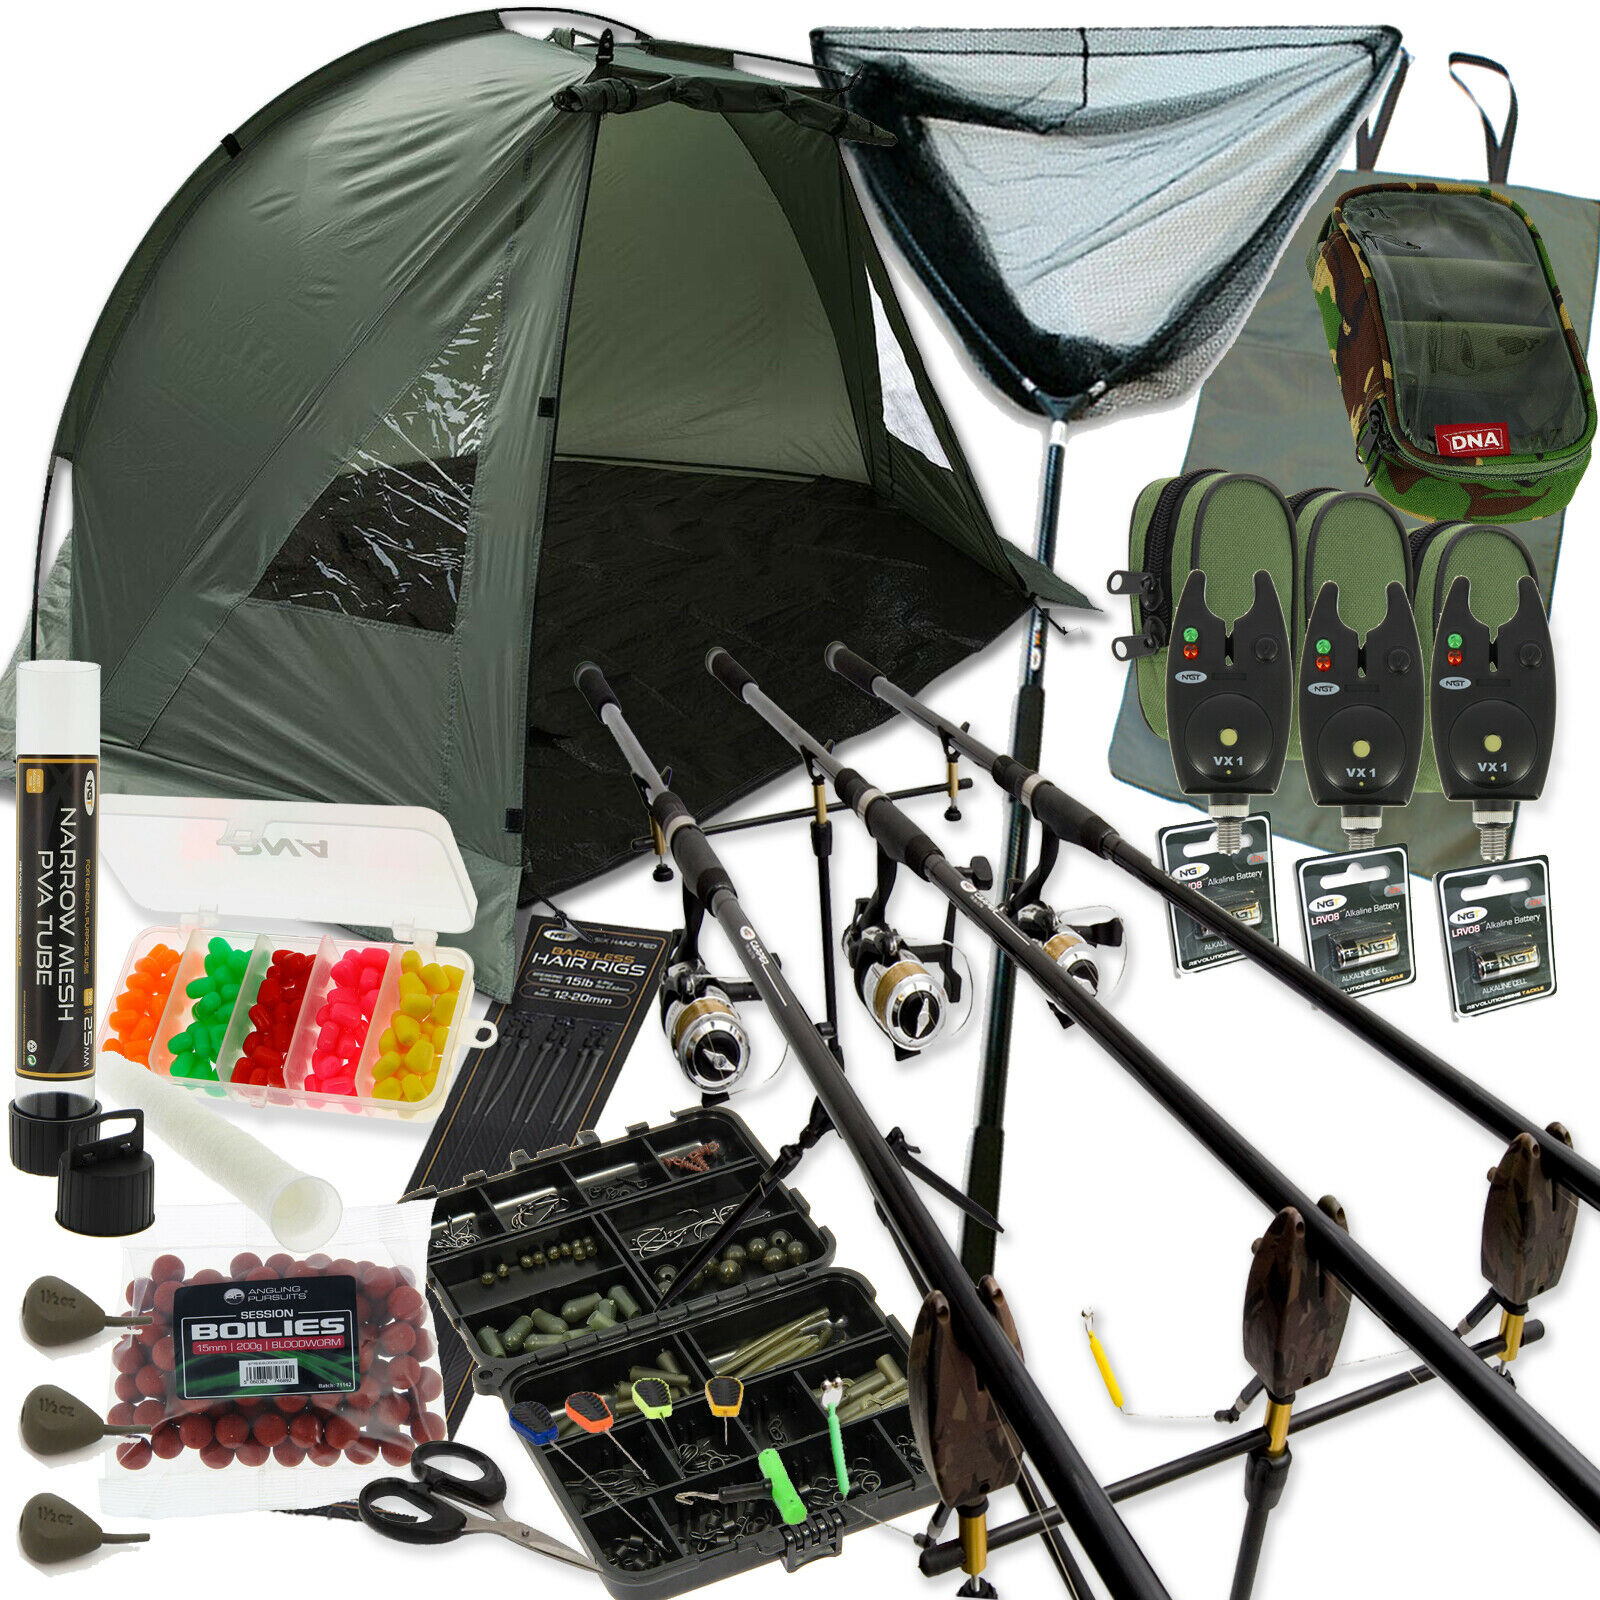 Complete Carp Fishing Set up with Shelter Bivvy Rods Reels Alarms Net & Tackle